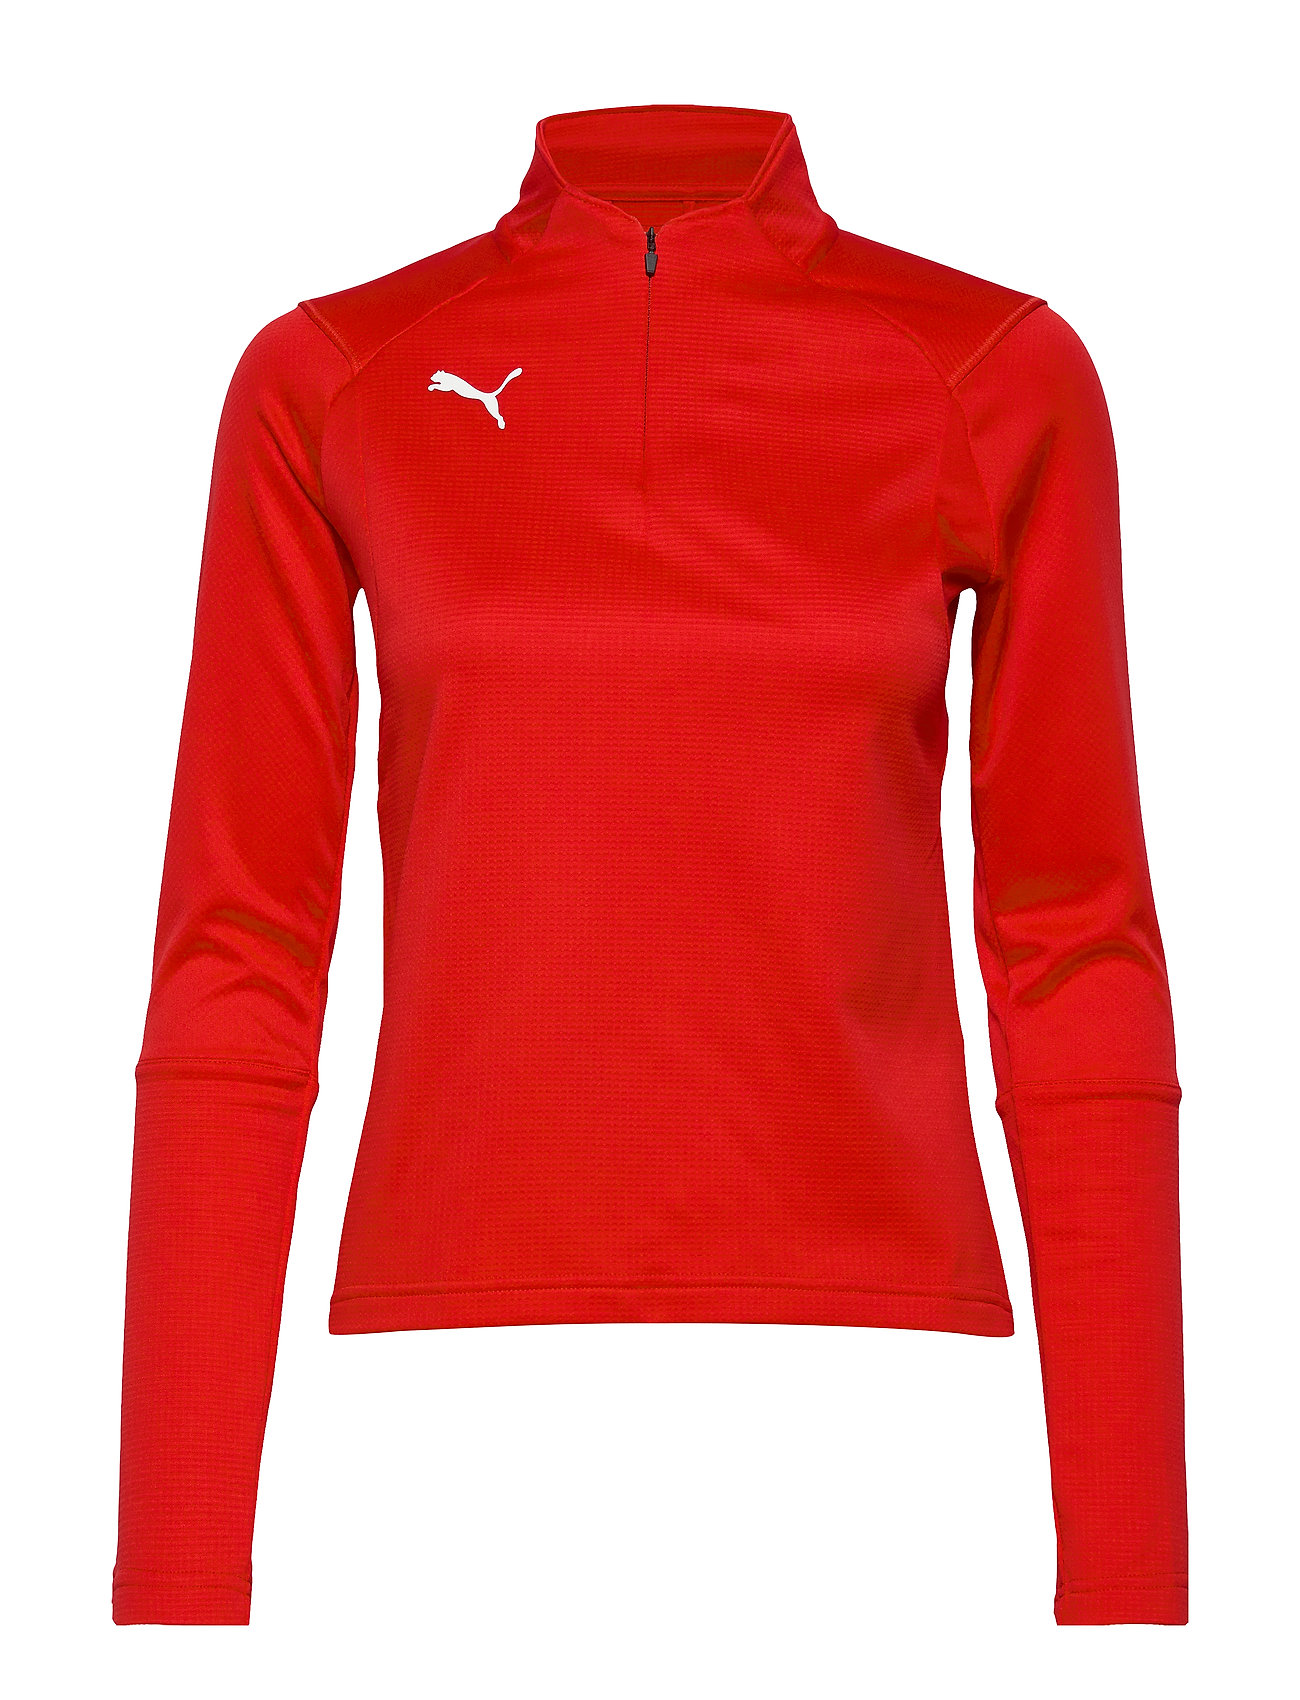 PUMA LIGA Training 1/4 Zip Top W - PUMA RED-PUMA WHITE